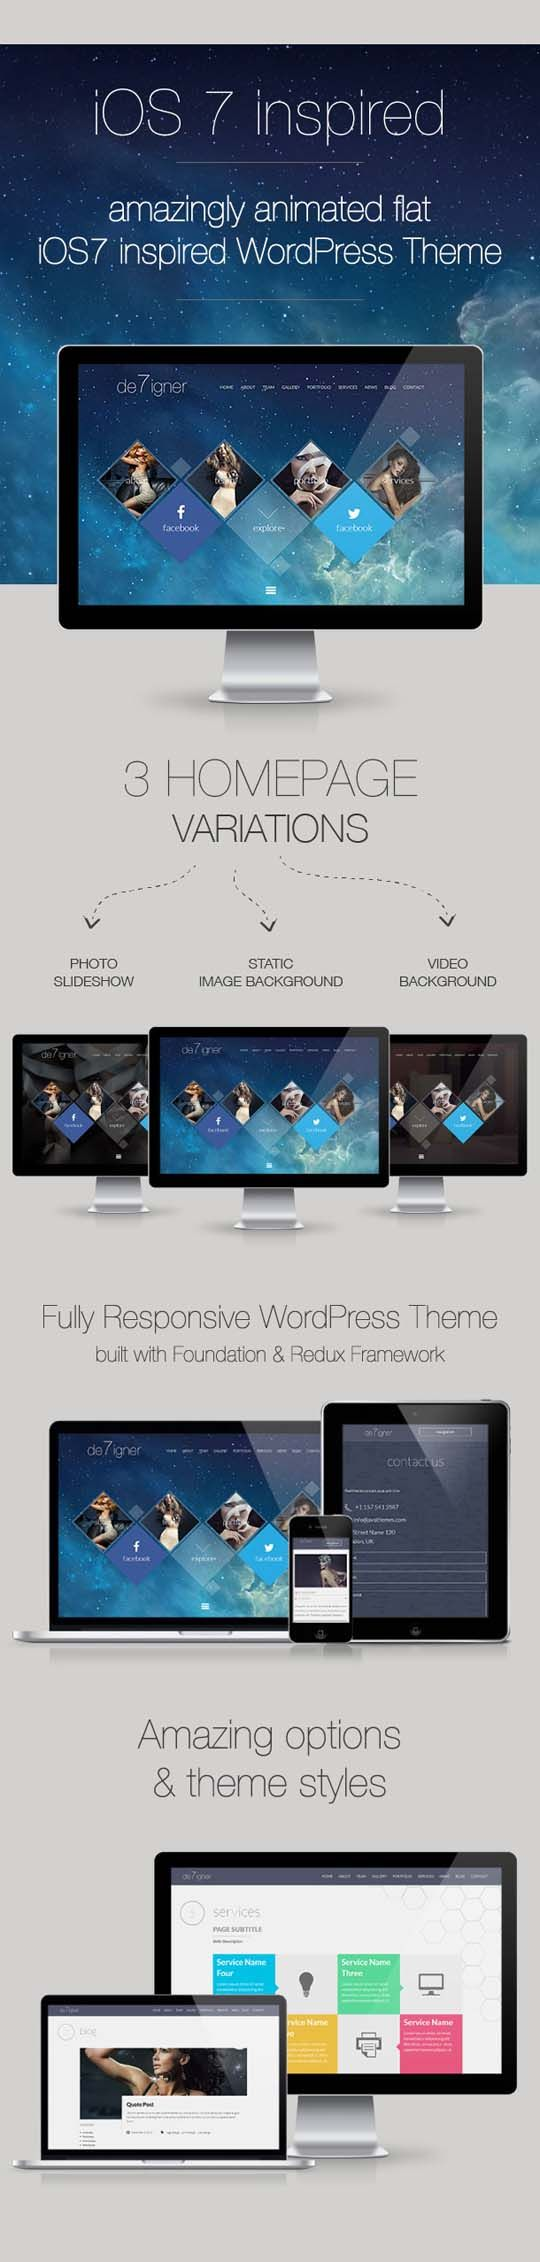 De7igner – Flat iOS7 Inspired OnePage Parallax Theme